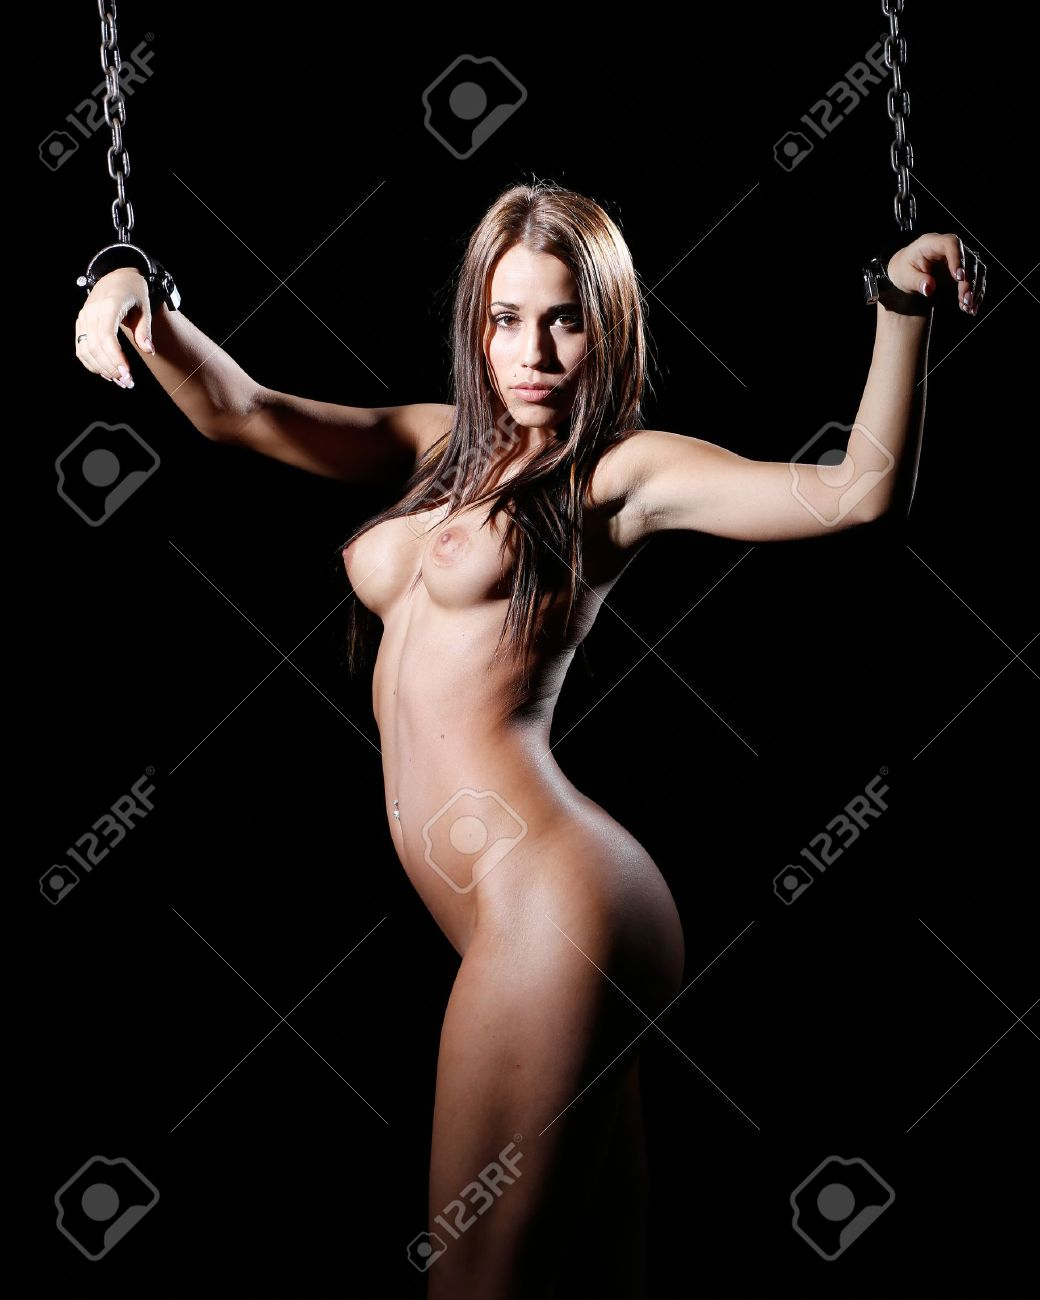 Nude chained art naked tube